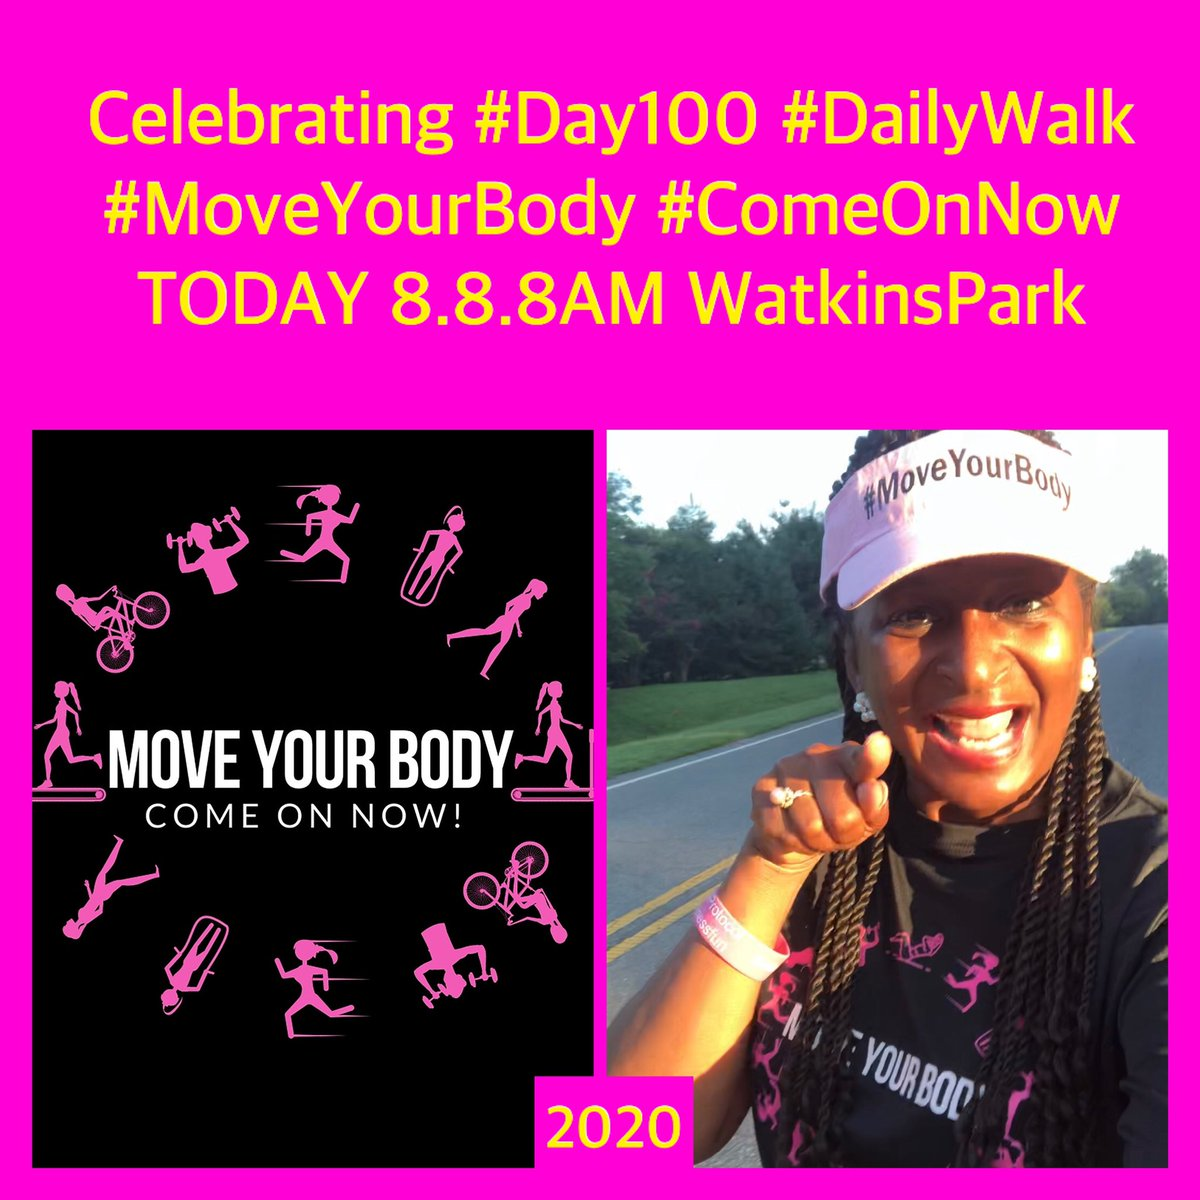 Good Morning 🗣 #GetUp #MoveYourBody #ComeOnNow #SaturdayMorning #SaturdayMotivation   Let's have #FitnessFun @pgparks #WatkinsPark 8AM  see you soon! 🥰 https://t.co/Jww7kvurt0